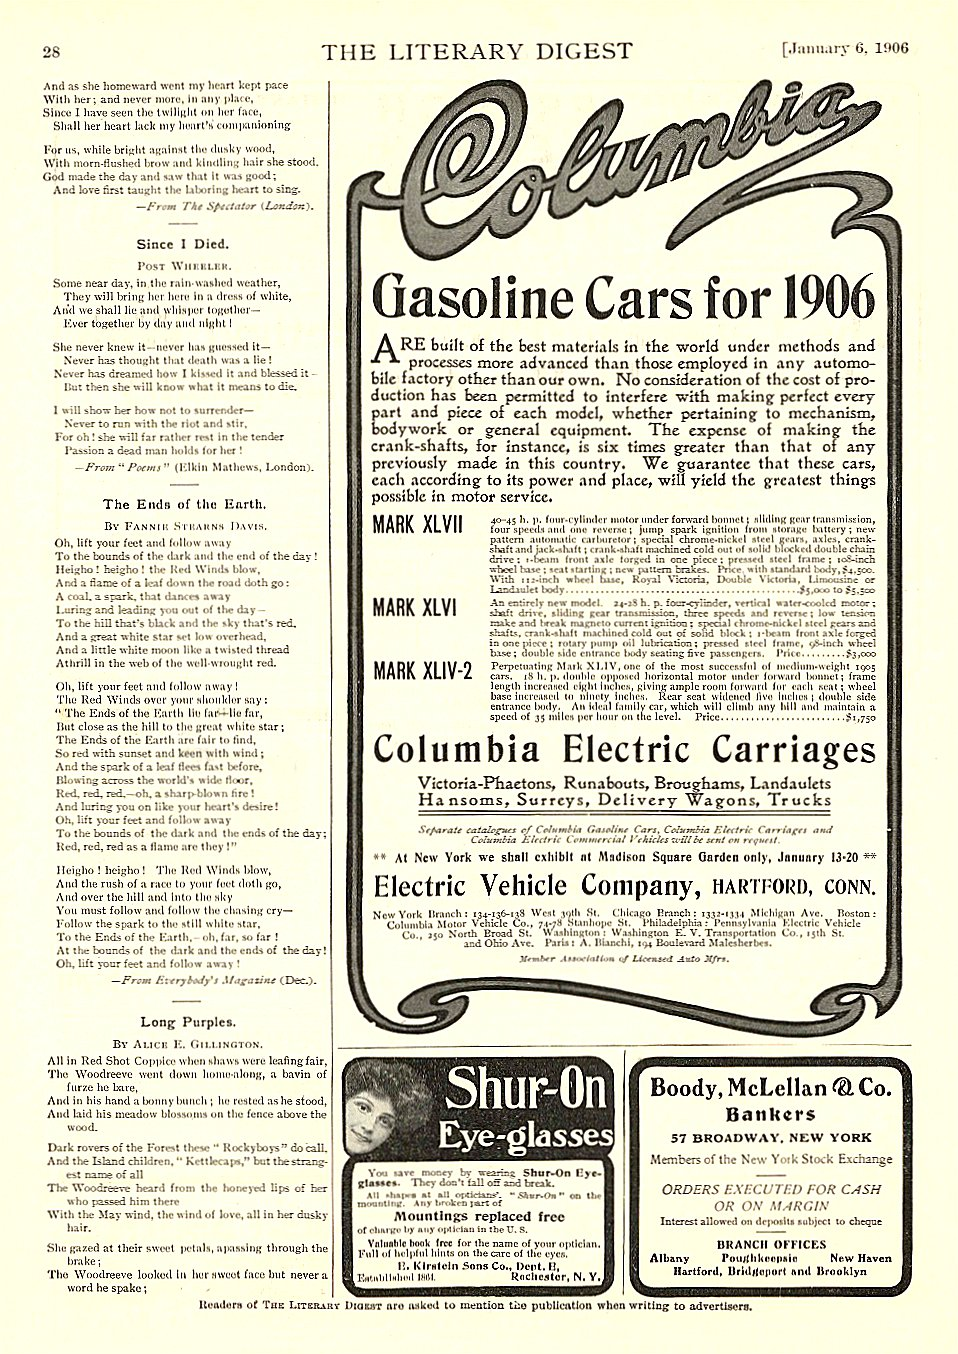 1906 1 6 COLUMBIA Electric Gasoline Cars for 1906 Columbia Electric Carriages Electric Vehicle Company Hartford, CONN The Literary Digest January 6, 1906 9″x12″ page 28